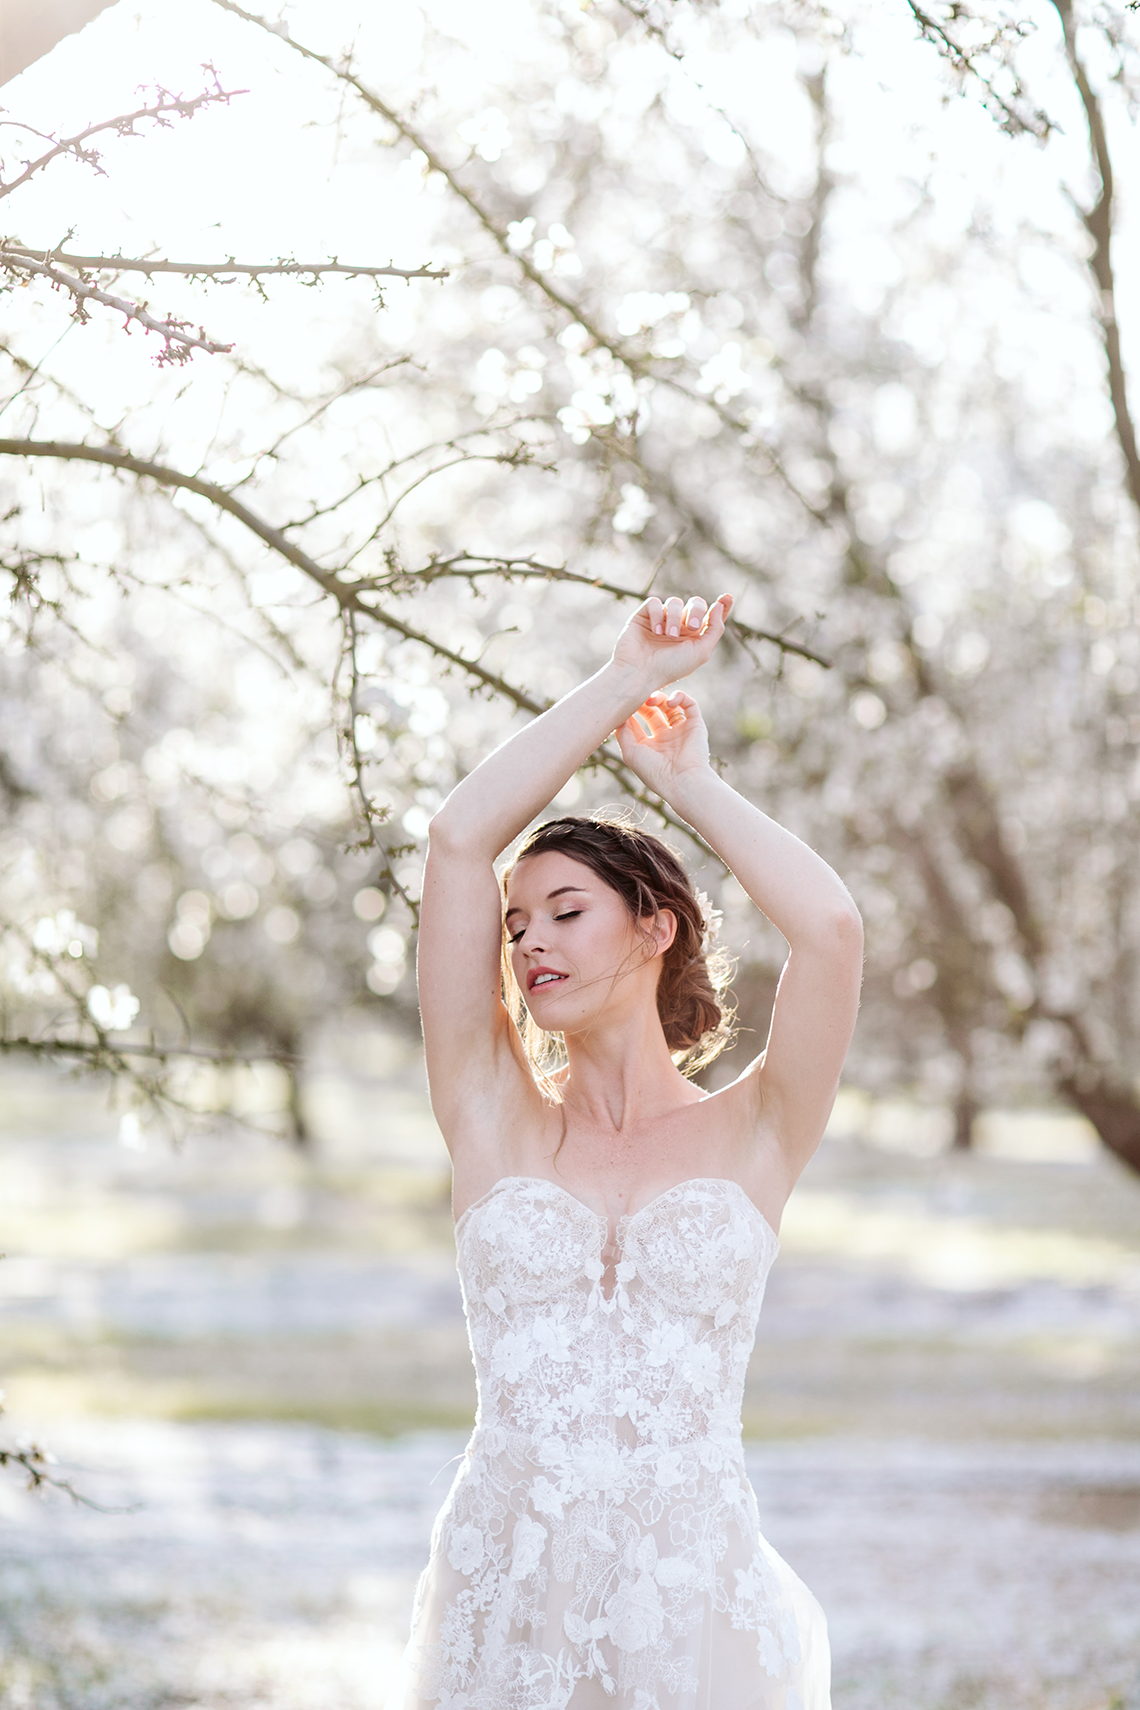 Whimsical Almond Orchard Blossom Wedding Inspiration – Playful Soul Photography 16